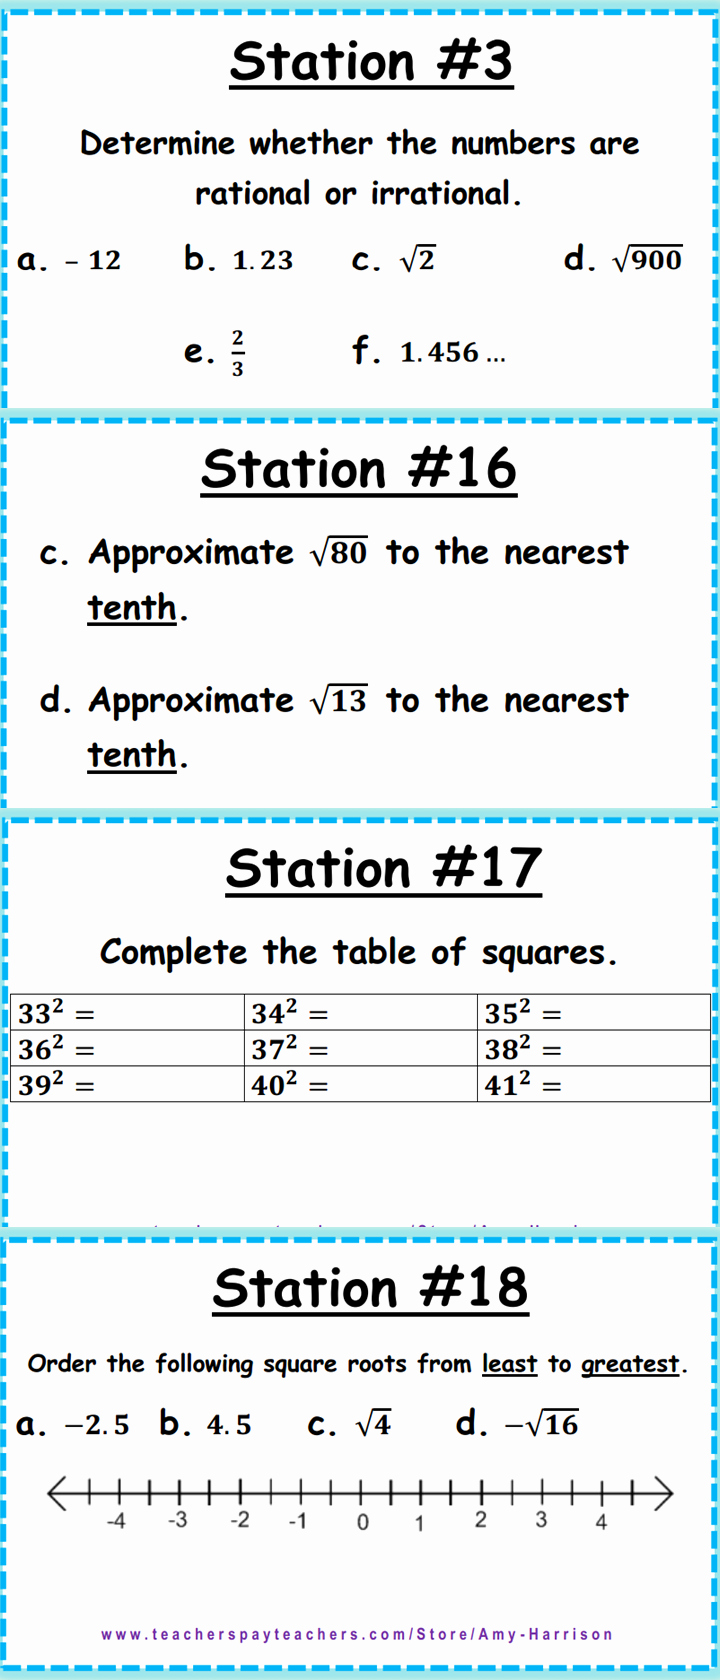 Rational Vs Irrational Numbers Worksheet Best Of Rational and Irrational Numbers Worksheet Pdf